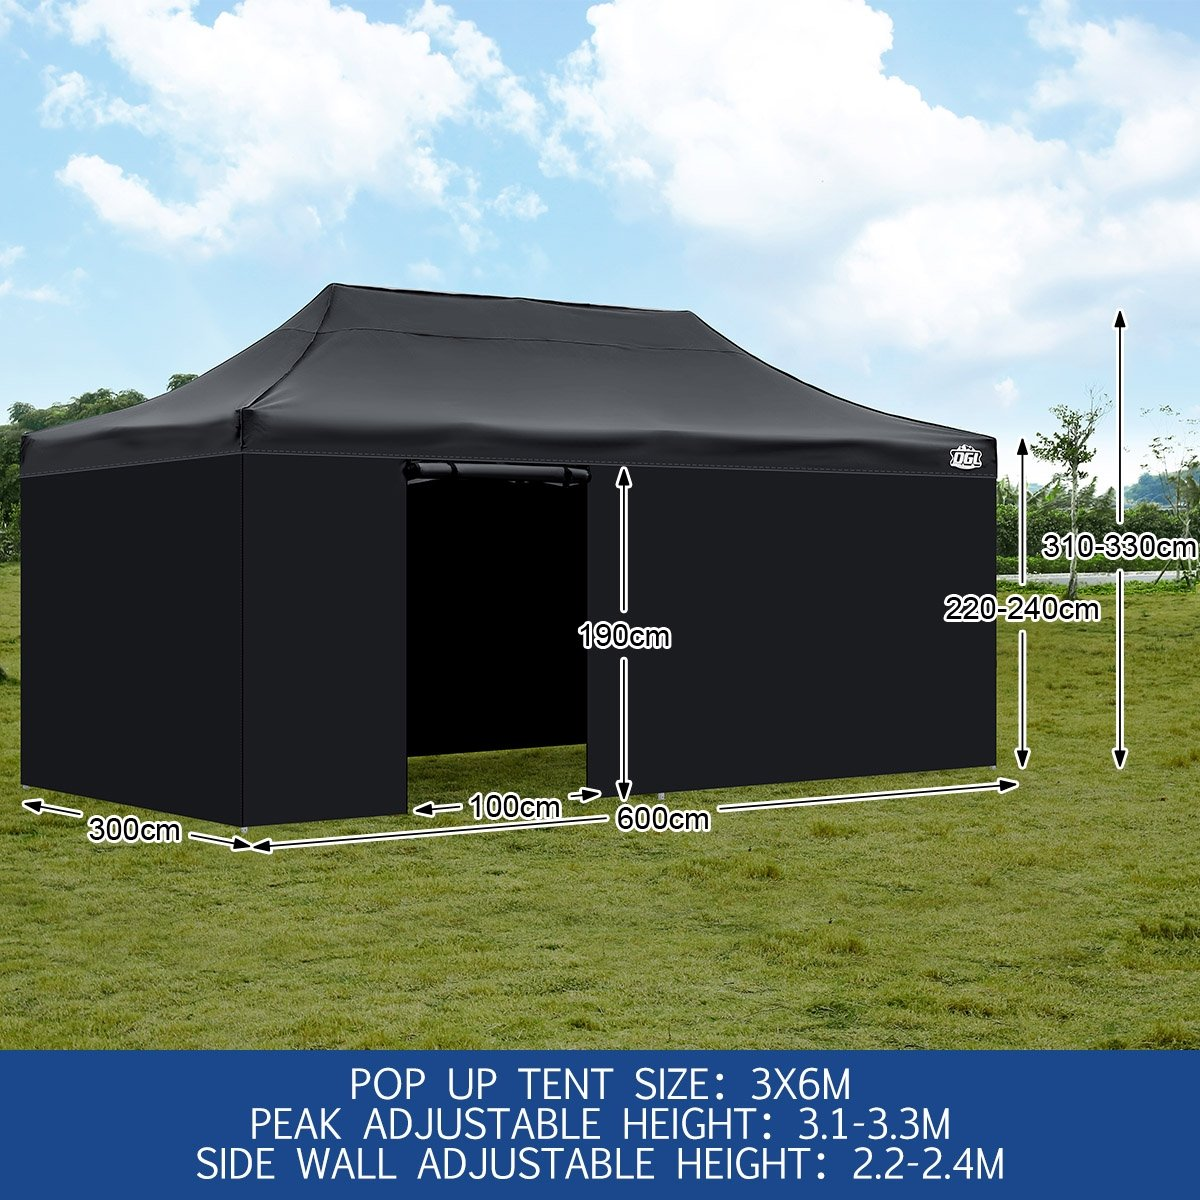 ... Oztrail Bungalow 9 Ogl Pop Up Gazebo Outdoor Folding Marquee Canopy Party Tent 3x6m ... & Oztrail Bungalow 9 - Ogl Pop Up Gazebo Outdoor Folding Marquee ...